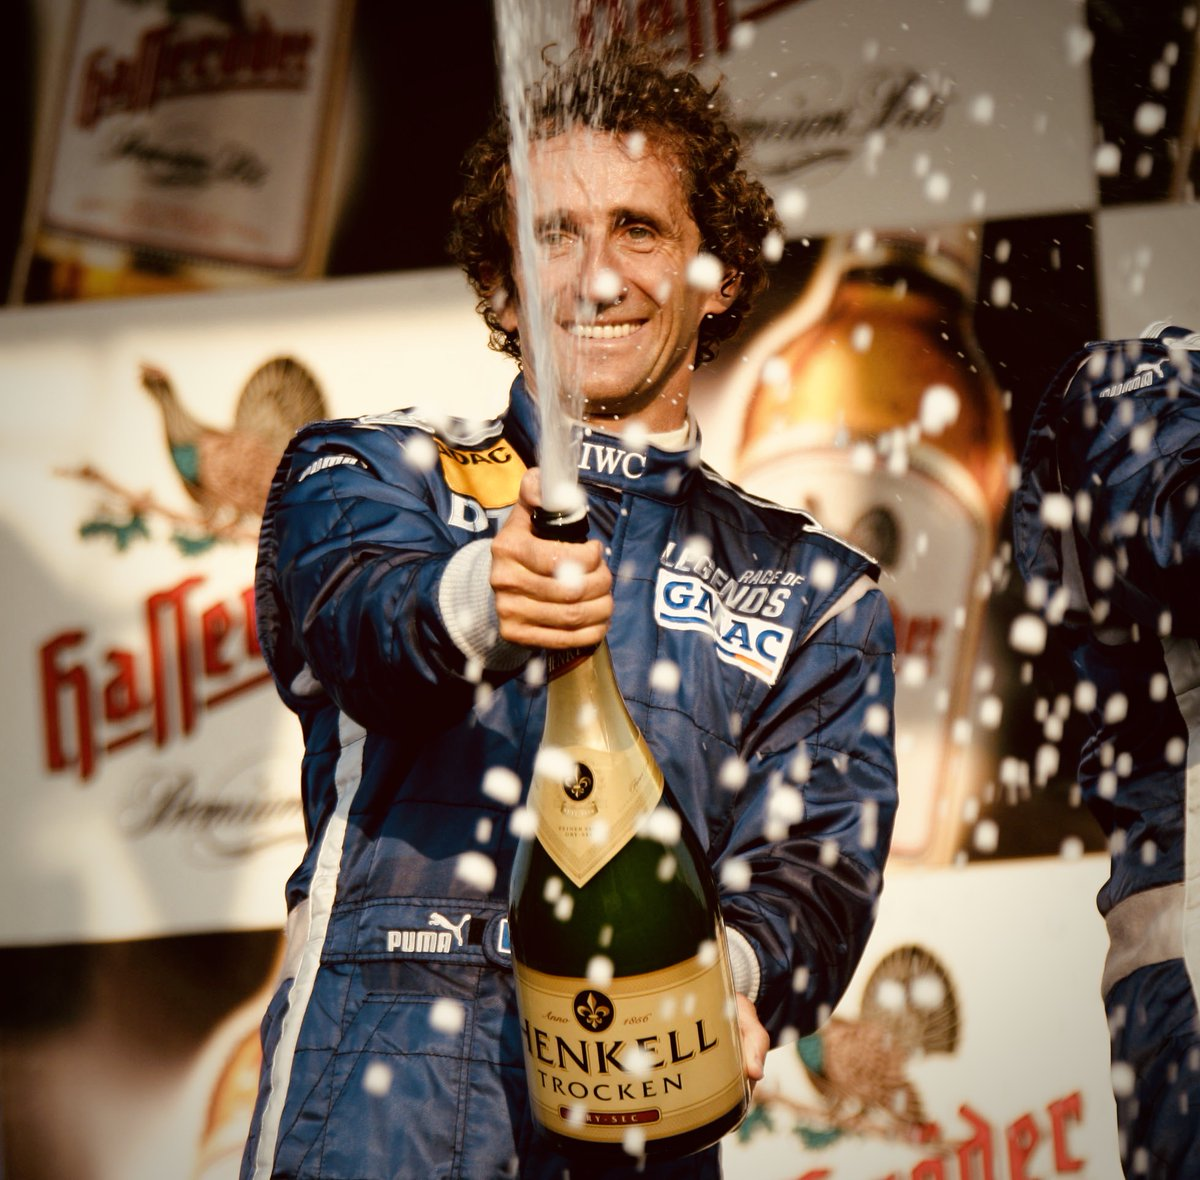 Birthday greetings to #DTM winner Alain Prost, who won the 2005 Legends' Race shoot-out at the Norisring. 🏆🇫🇷    And look who he beat!  🇦🇺 Mick Doohan 🏆🏆🏆🏆🏆 🇧🇷 Emerson Fittipaldi 🏆🏆 🇬🇧 Nigel Mansell 🏆 🇿🇦 Jody Scheckter🏆 🇻🇪 Johnny Cecotto 🏆🏆  #DTMRaceOfLegends 🏎️💨